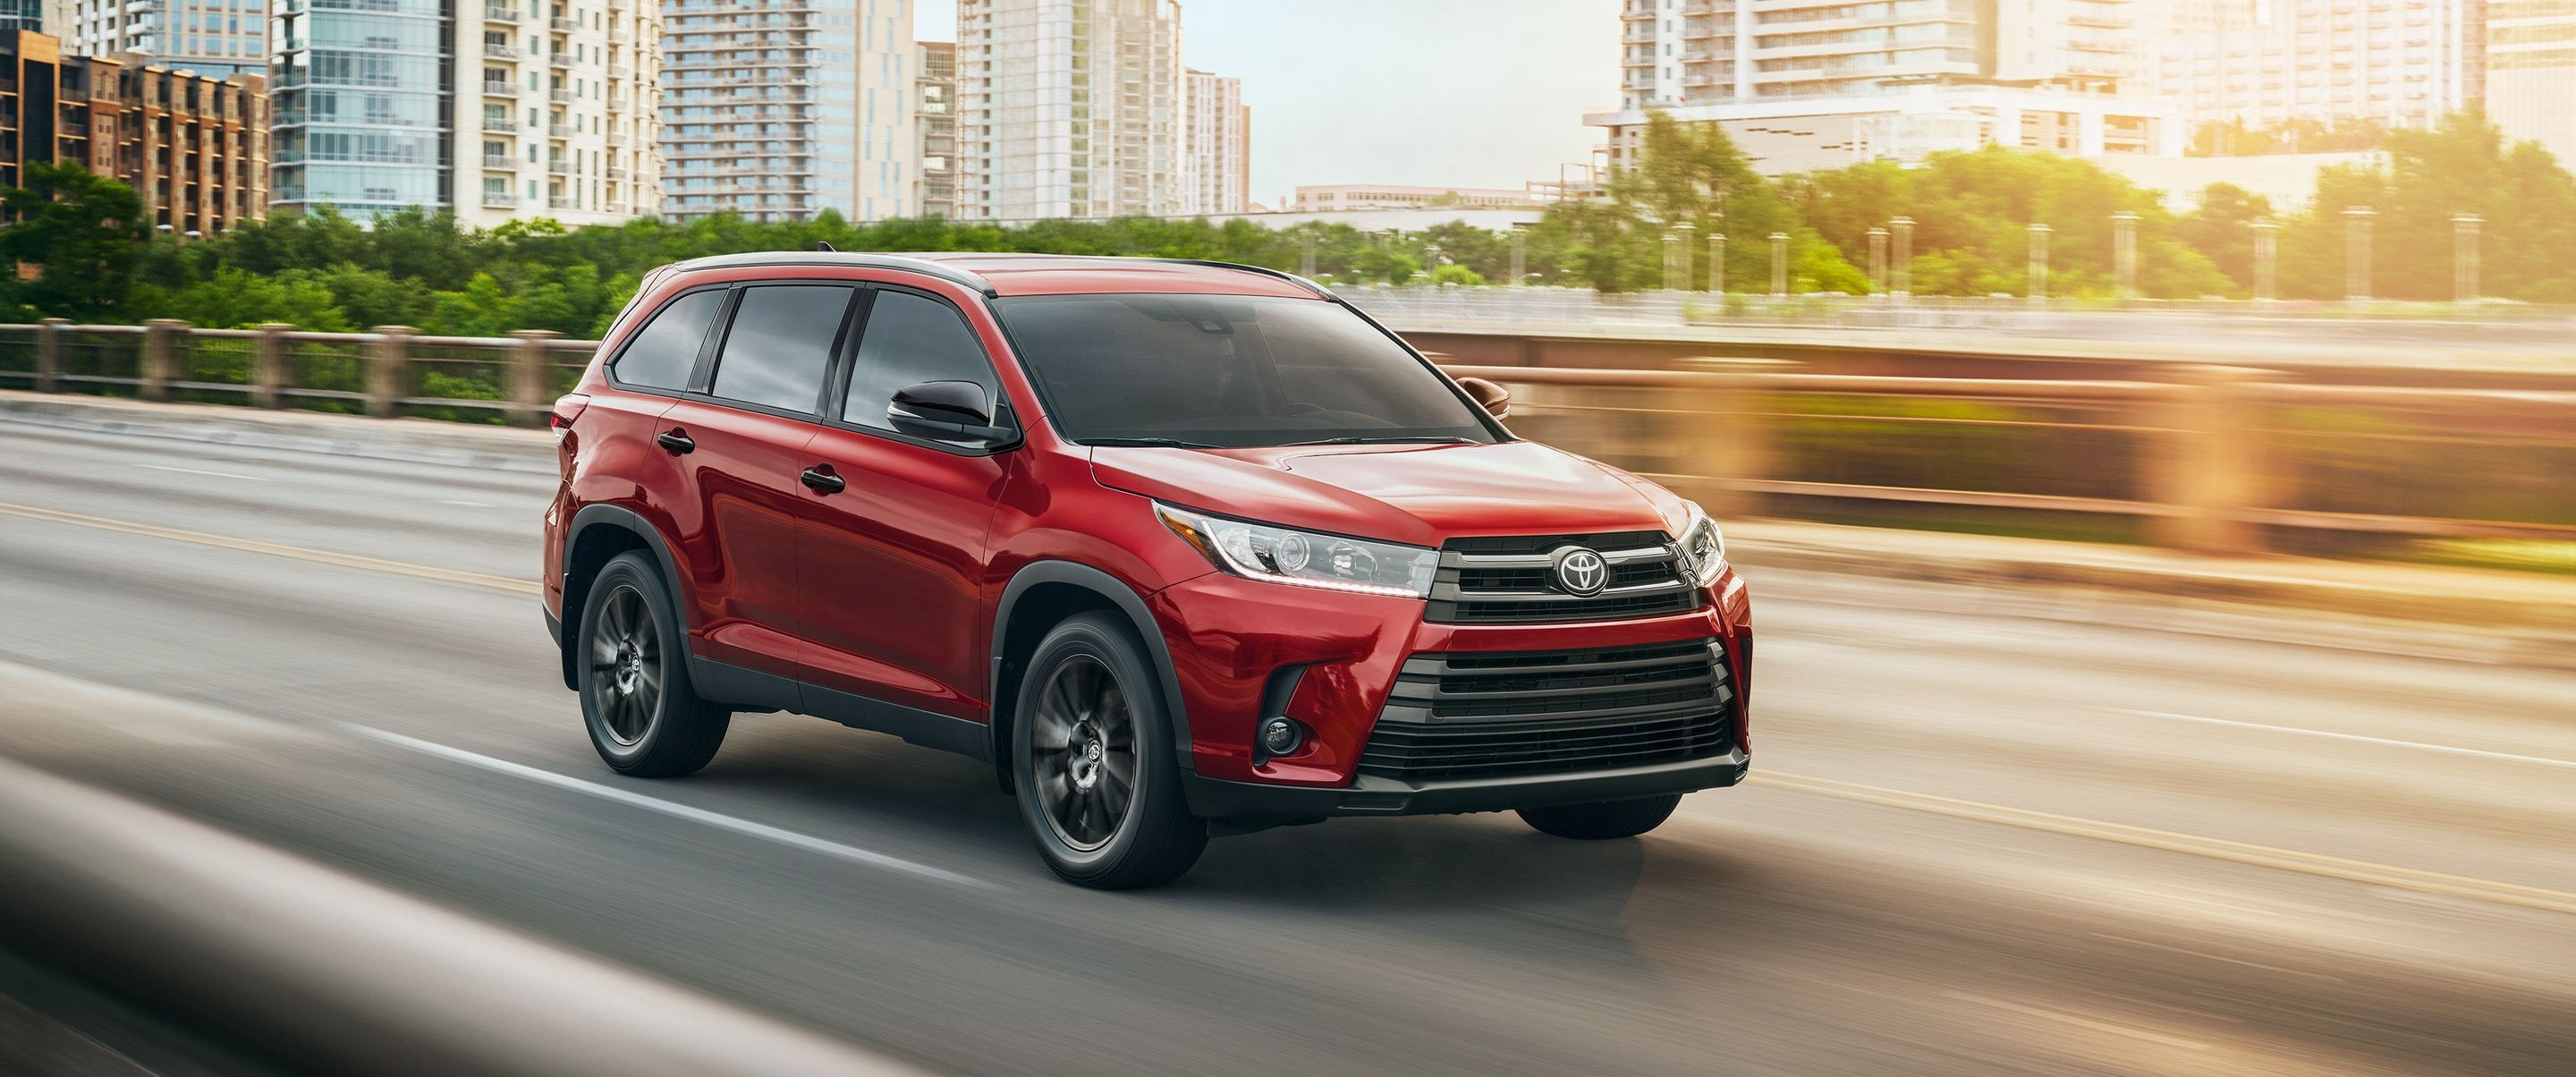 2019 Toyota Highlander for Sale near Pittsburgh, PA